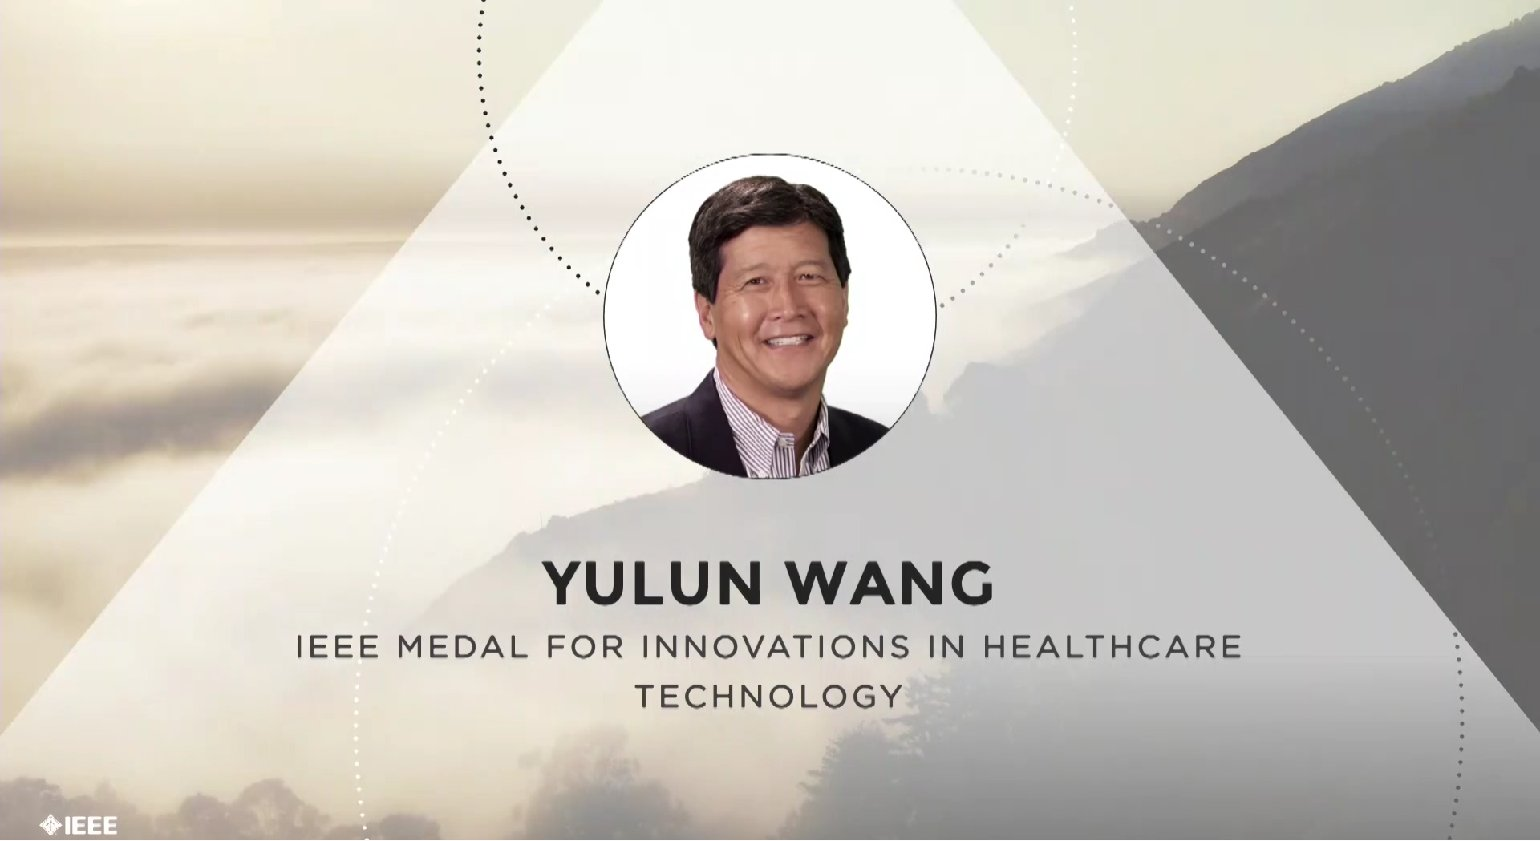 Yulun Wang accepts the IEEE Medal for Innovations in Healthcare Technology - Honors Ceremony 2017